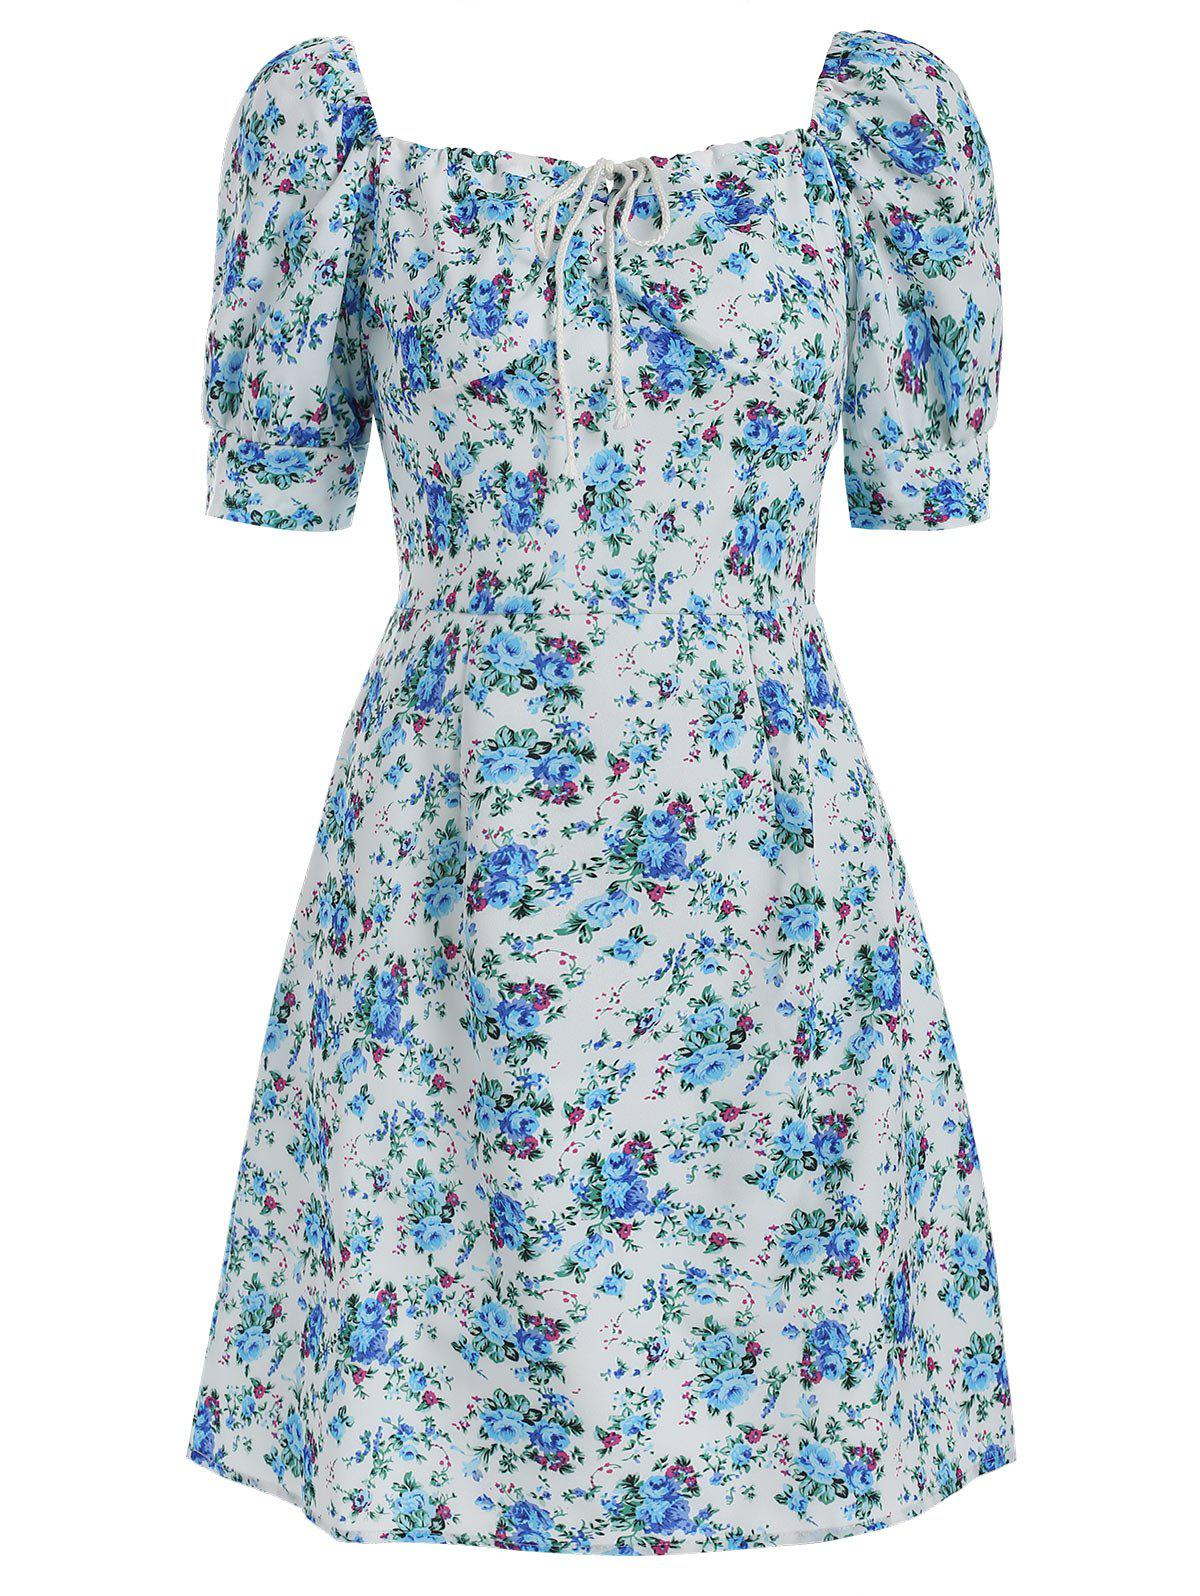 New Square Neck Floral Print A Line Dress